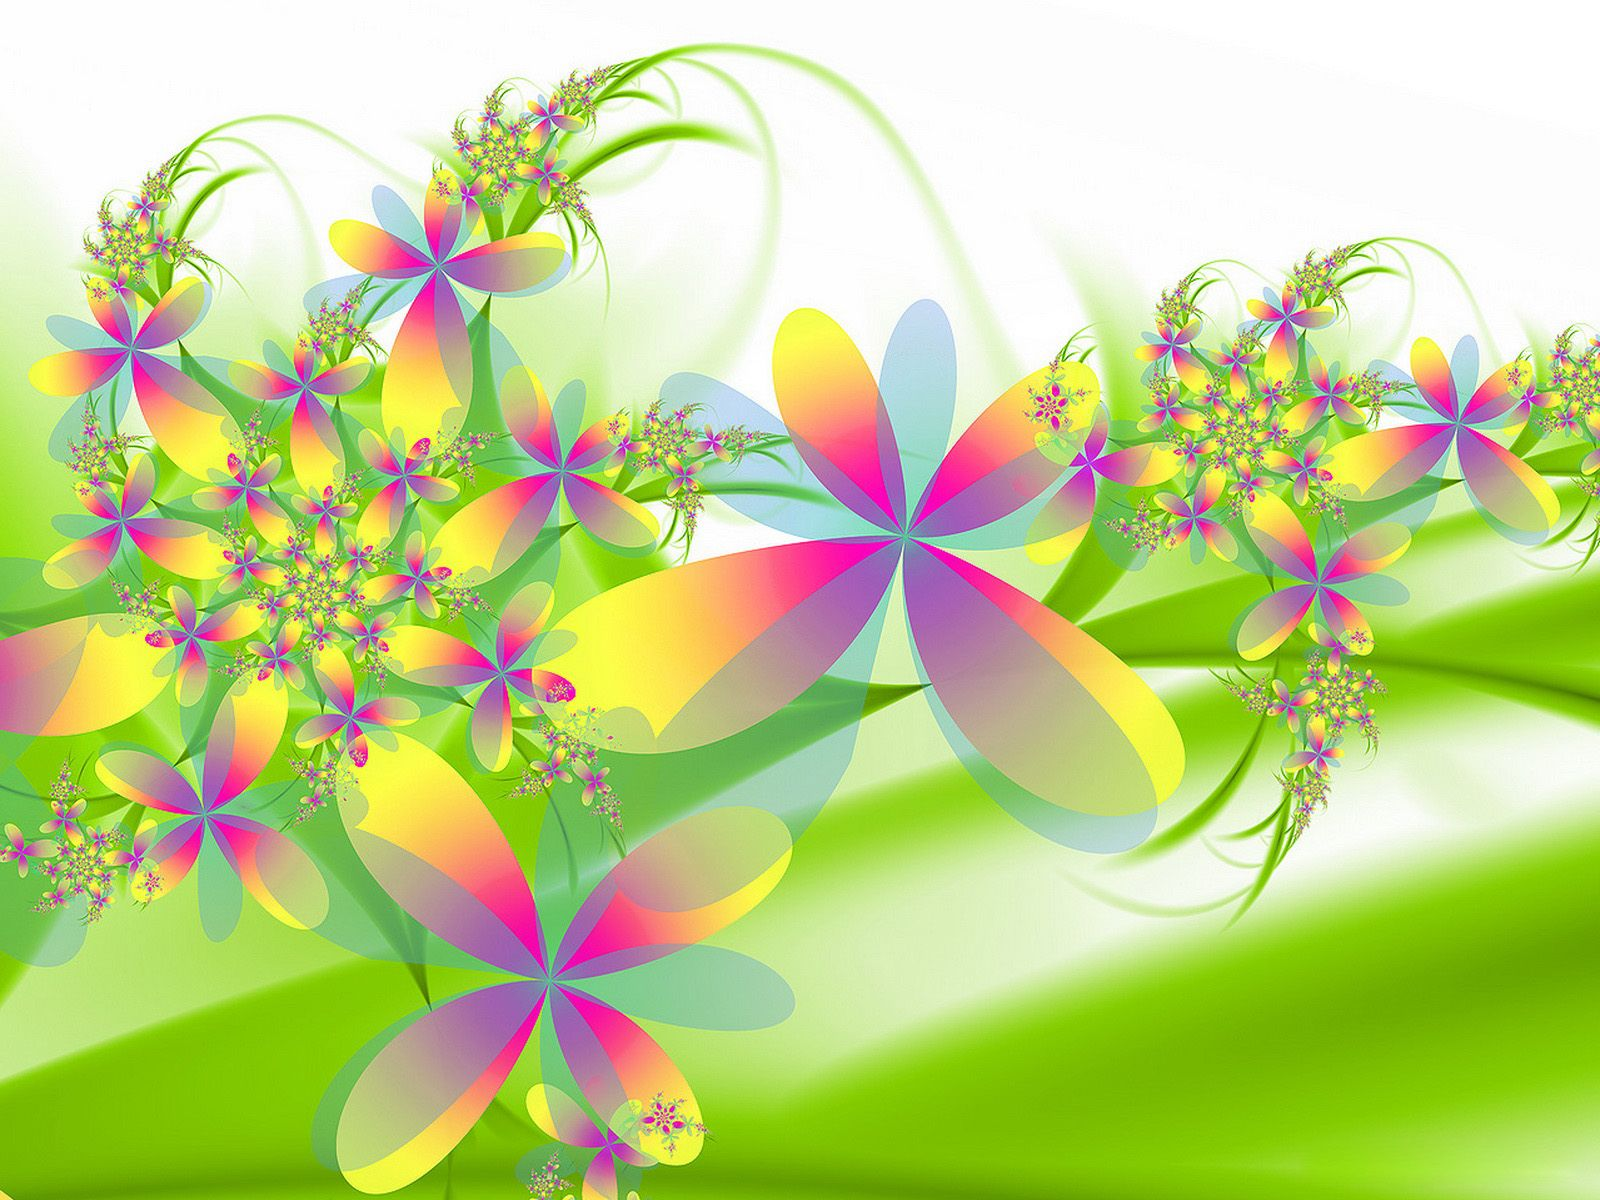 Flowers 3D Background Wallpaper | Free Desk Wallpapers | T-shirts ...